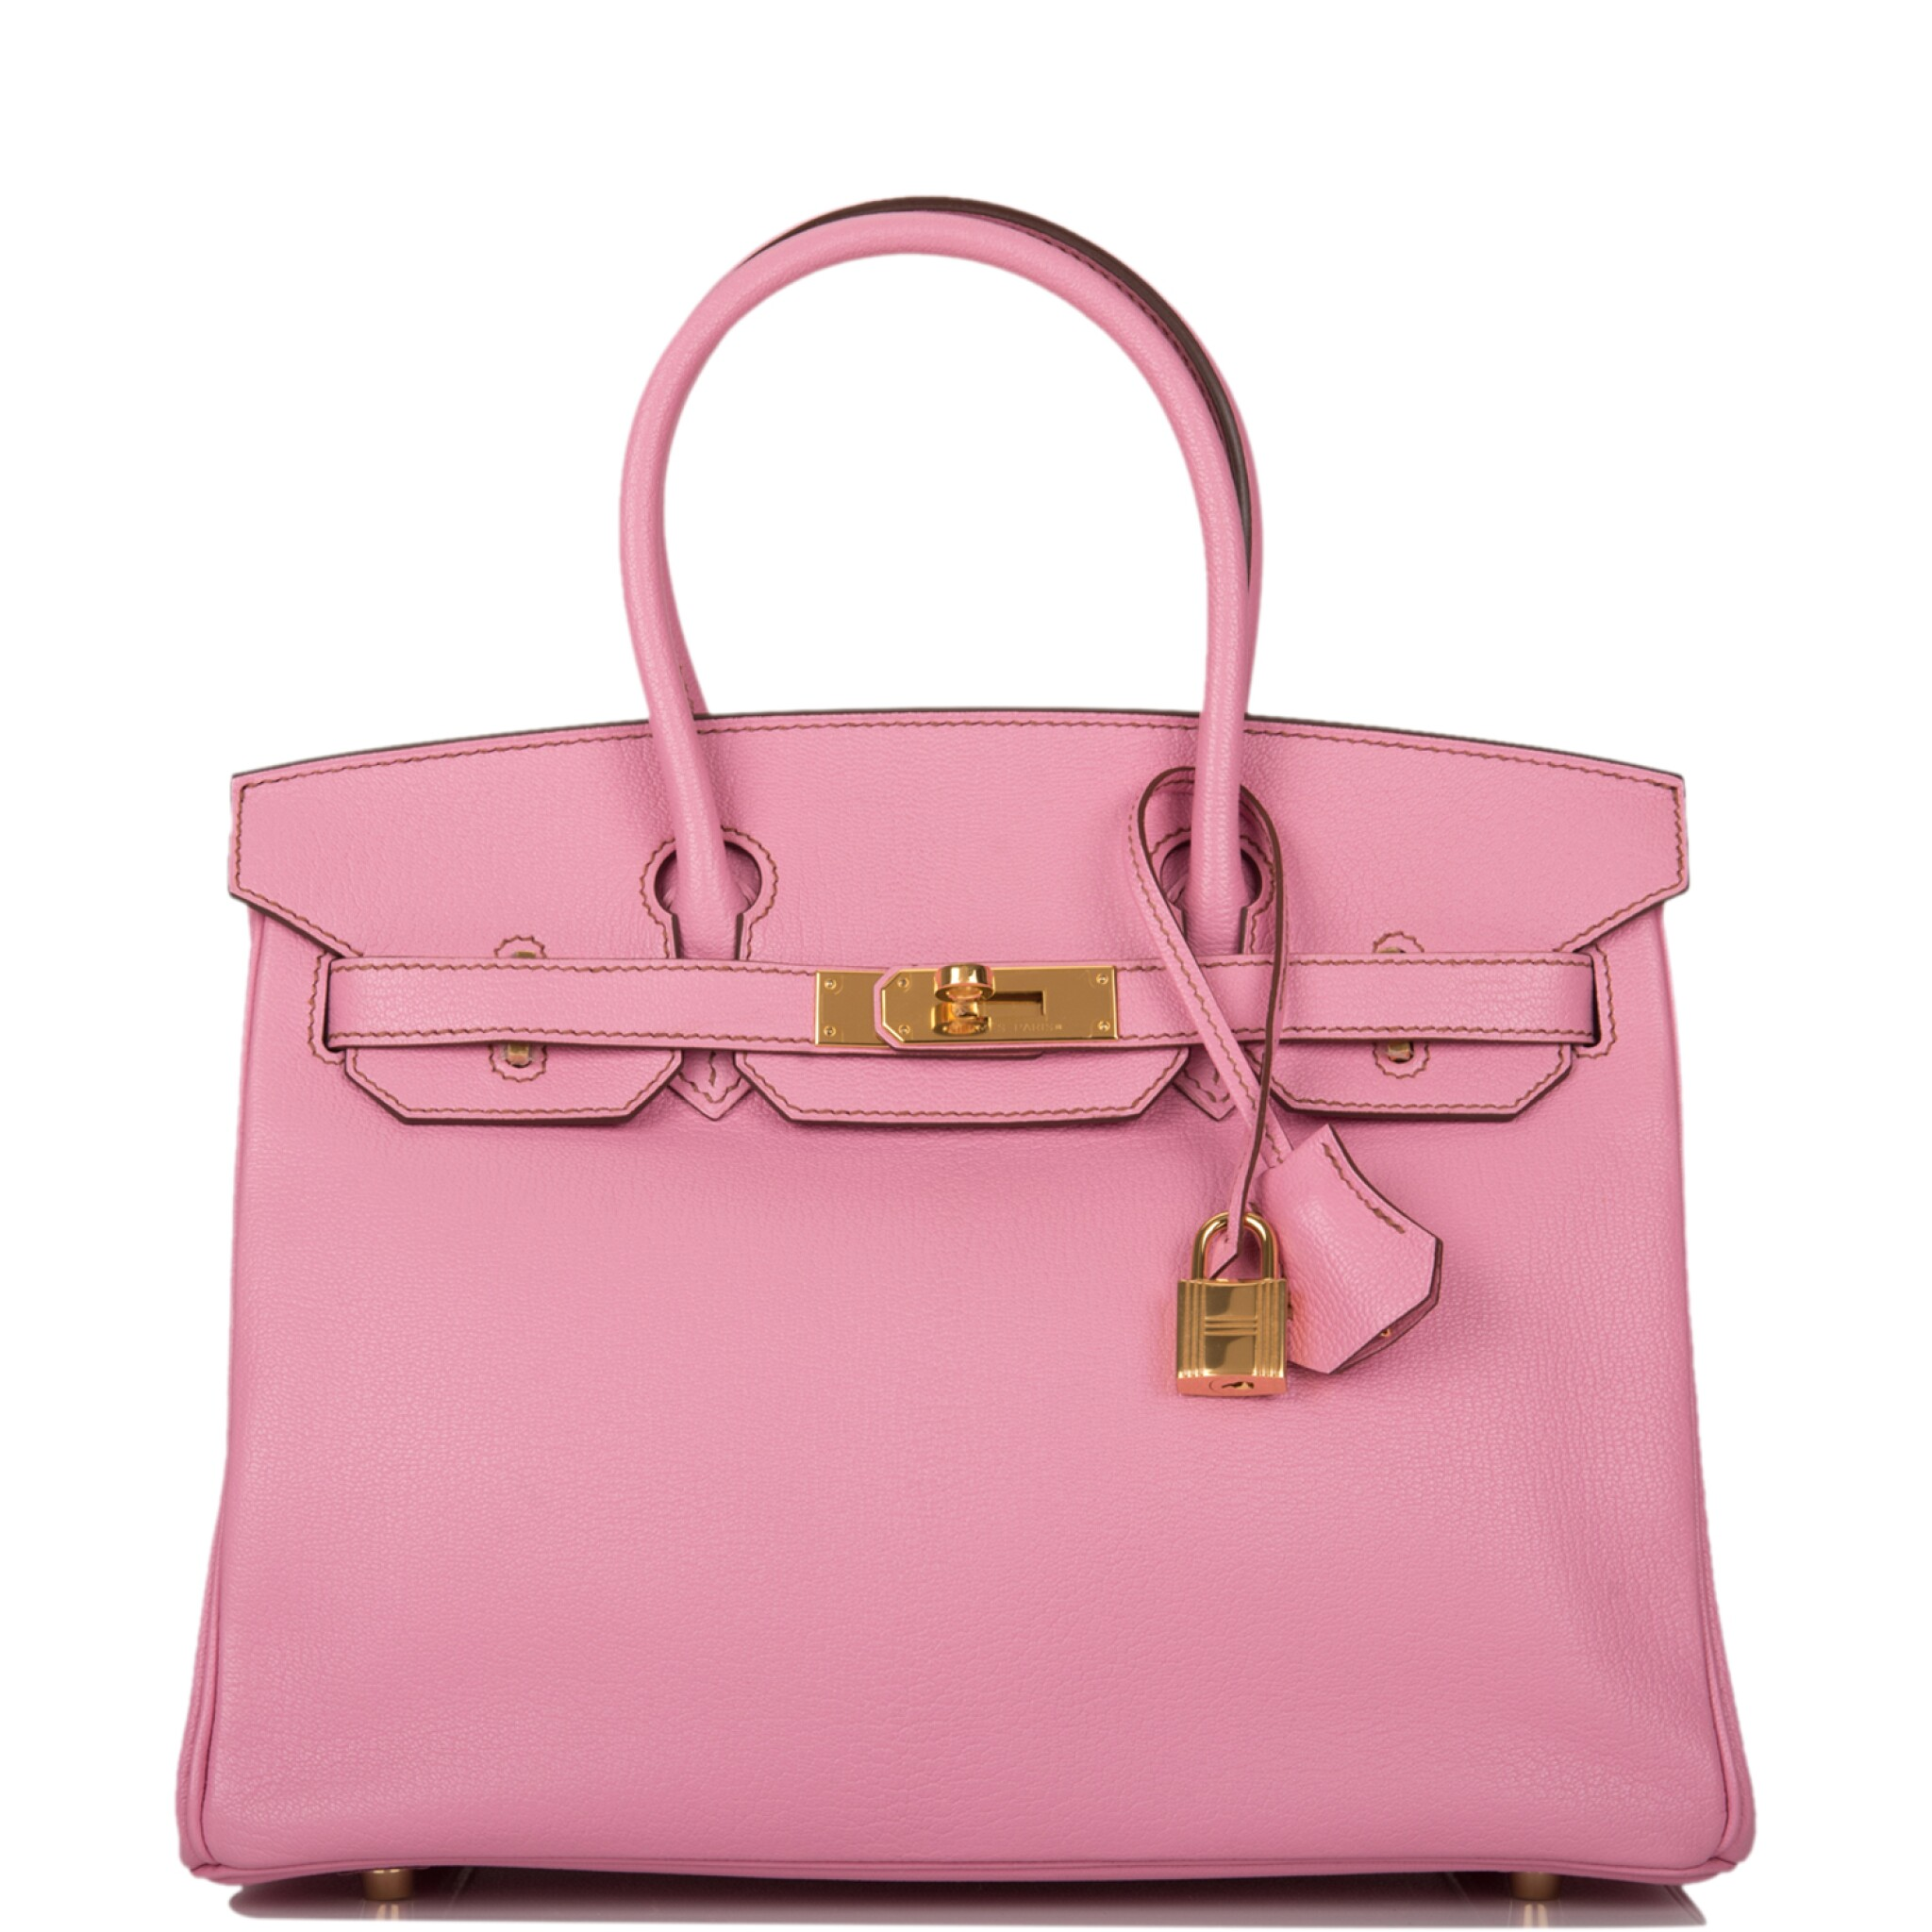 View full screen - View 1 of Lot 35. HERMÈS   BUBBLEGUM 5P BIRKIN 30CM OF CHEVRE LEATHER WITH GOLD HARDWARE.